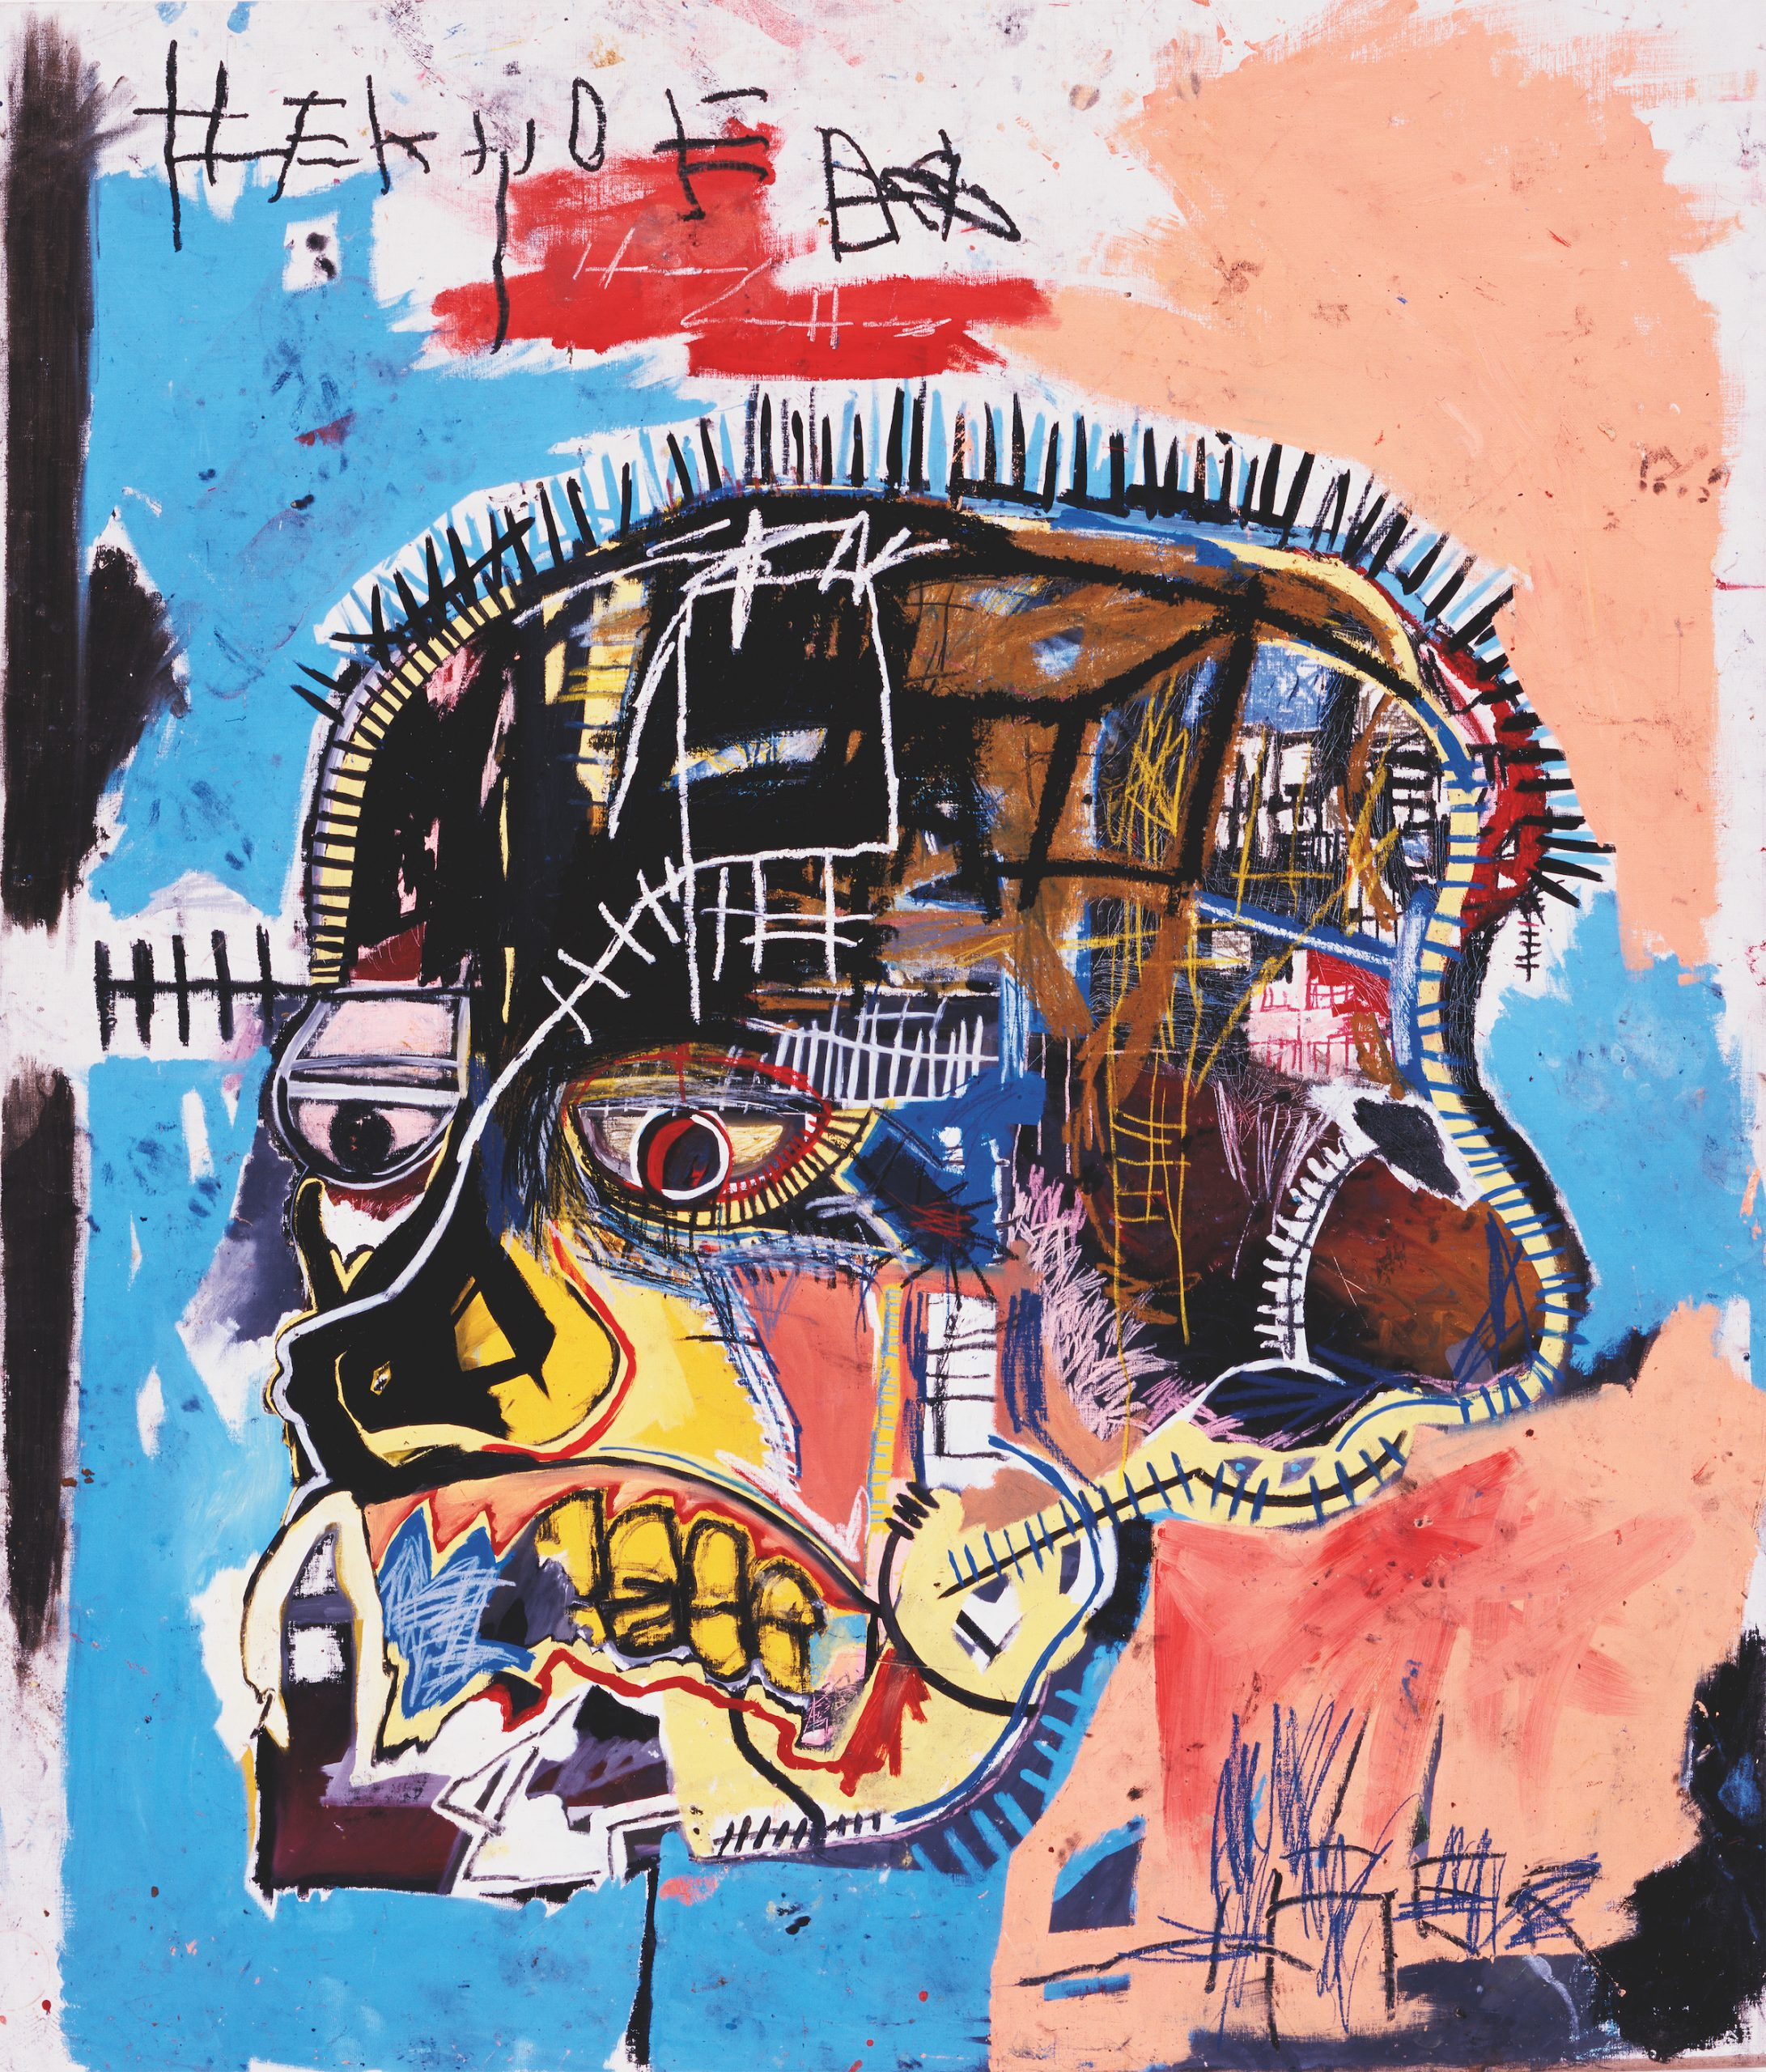 How Music Steered the Art of Jean-Michel Basquiat